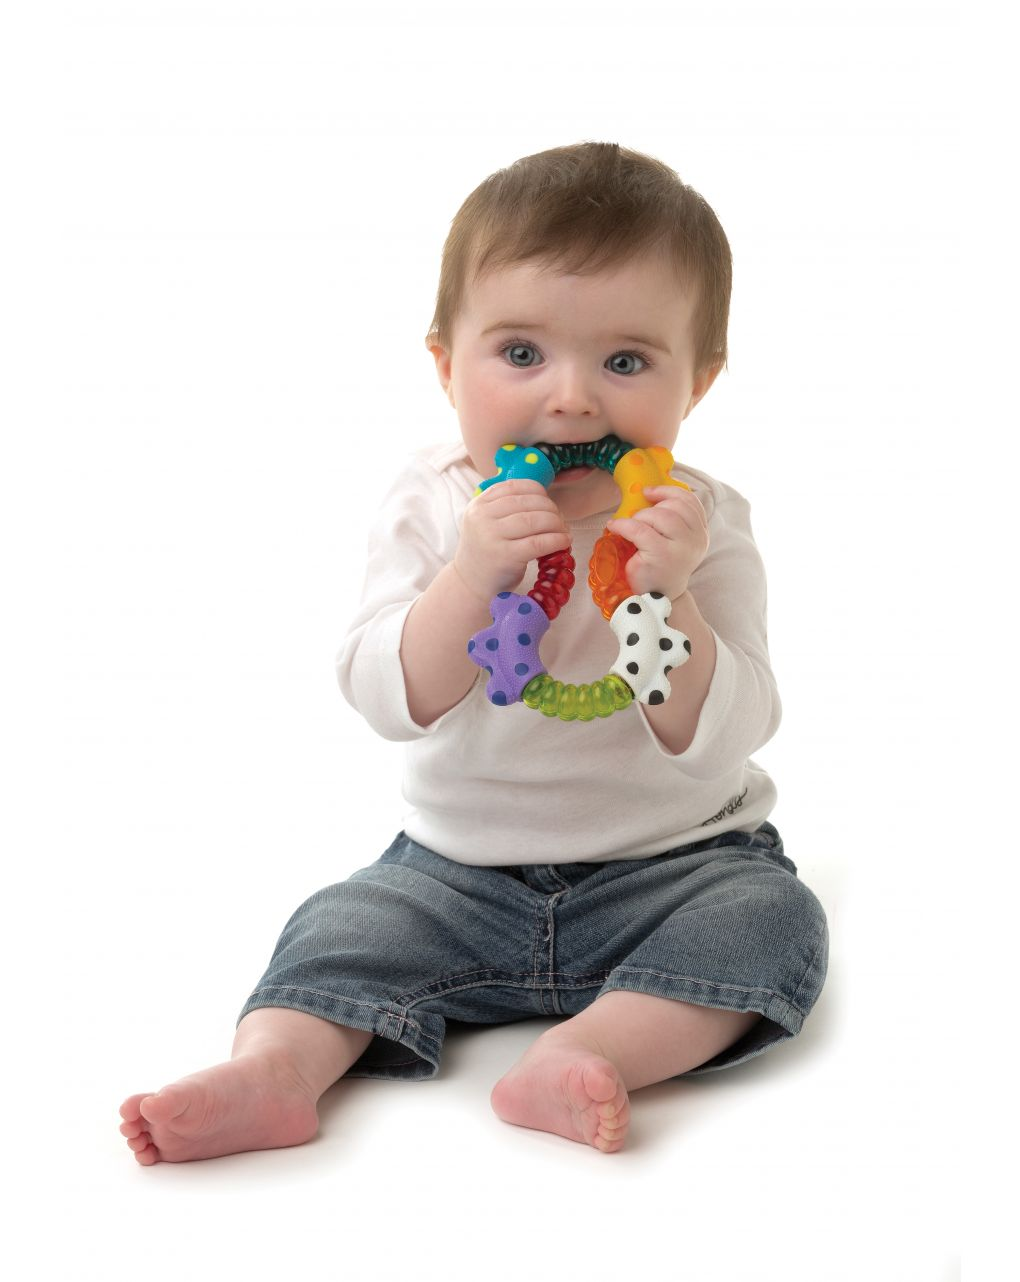 Playgro - click and twist rattle - Playgro